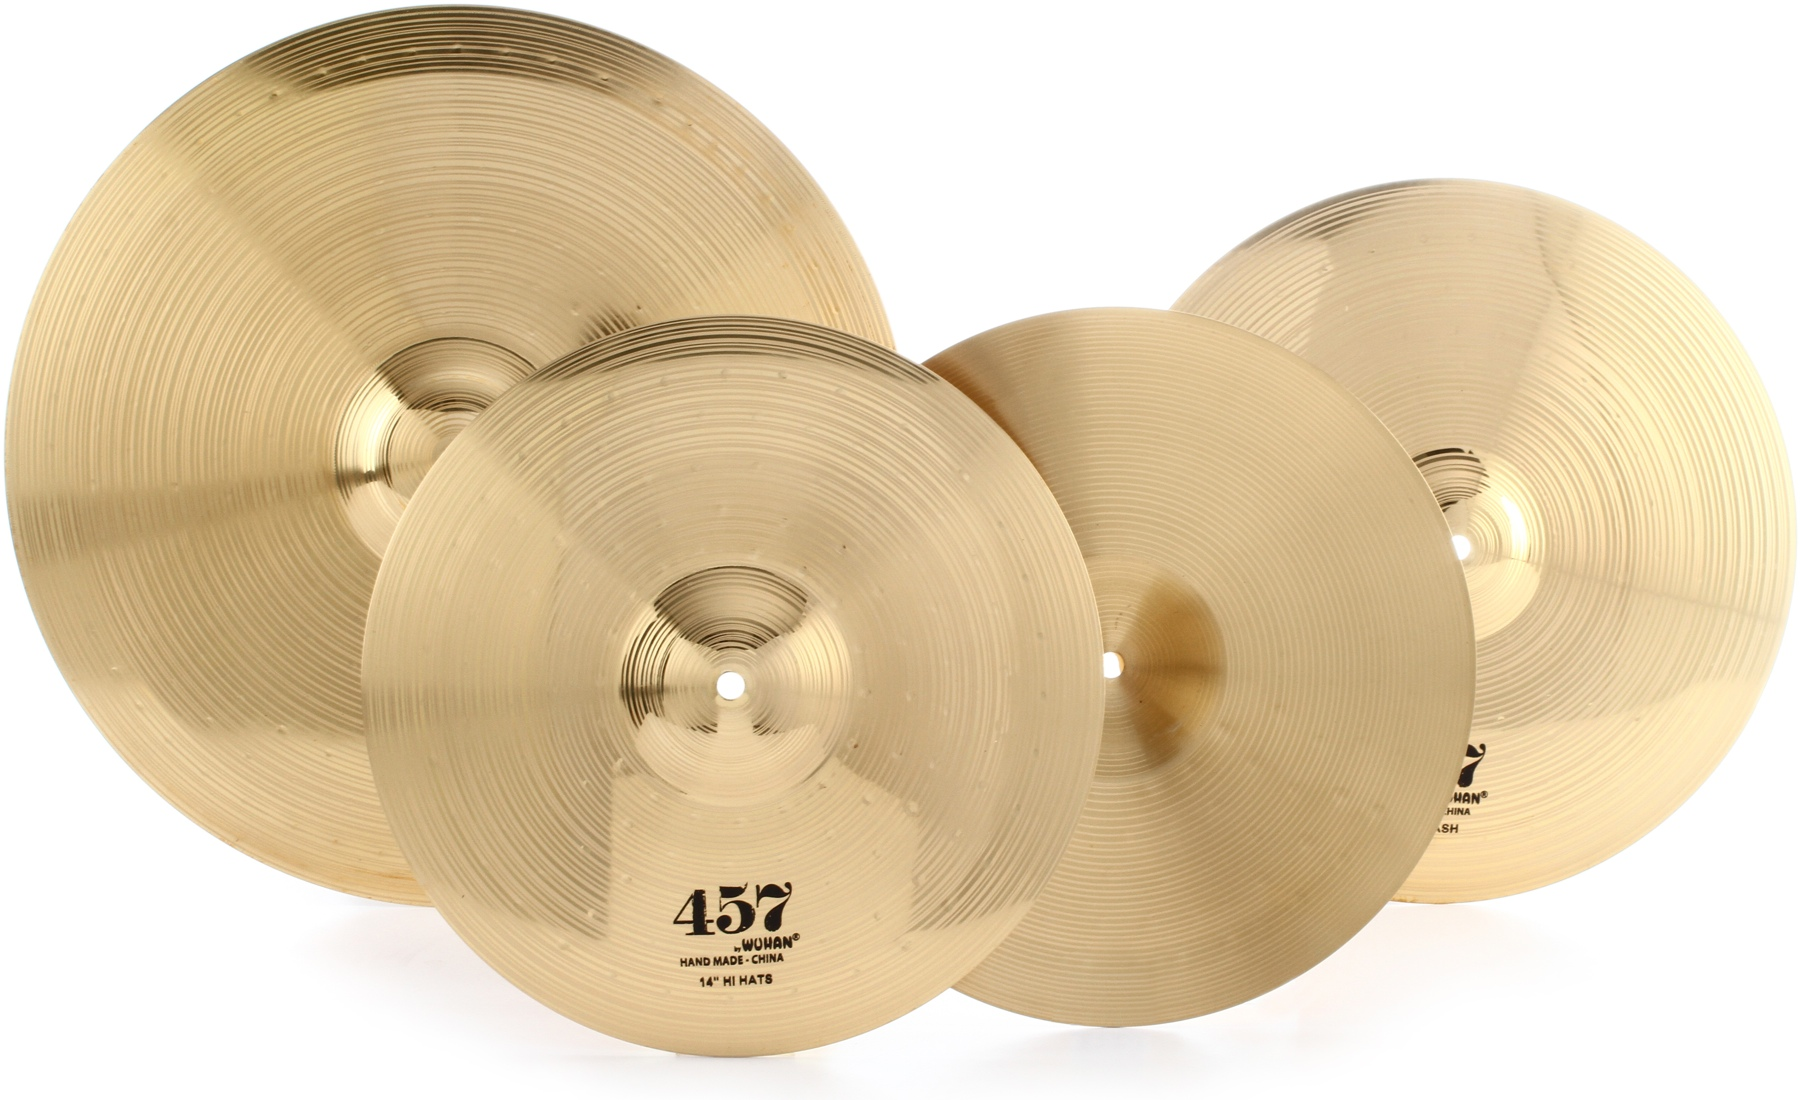 Wuhan 457 Cymbal Pack